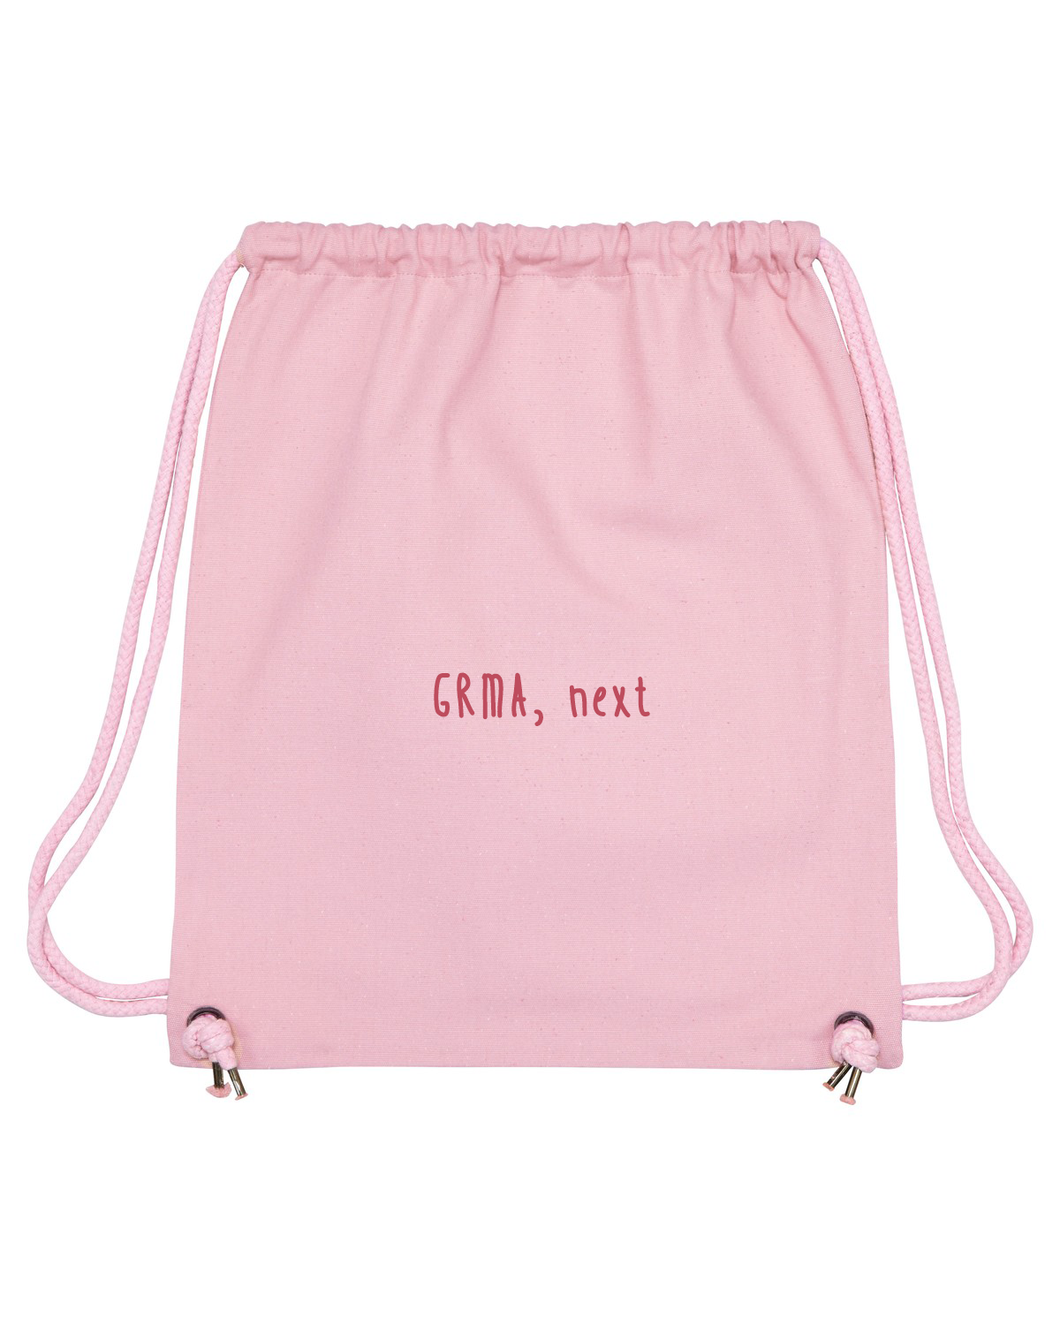 Pink feminist Irish language drawstring bag by Beanantees - GRMA, Next